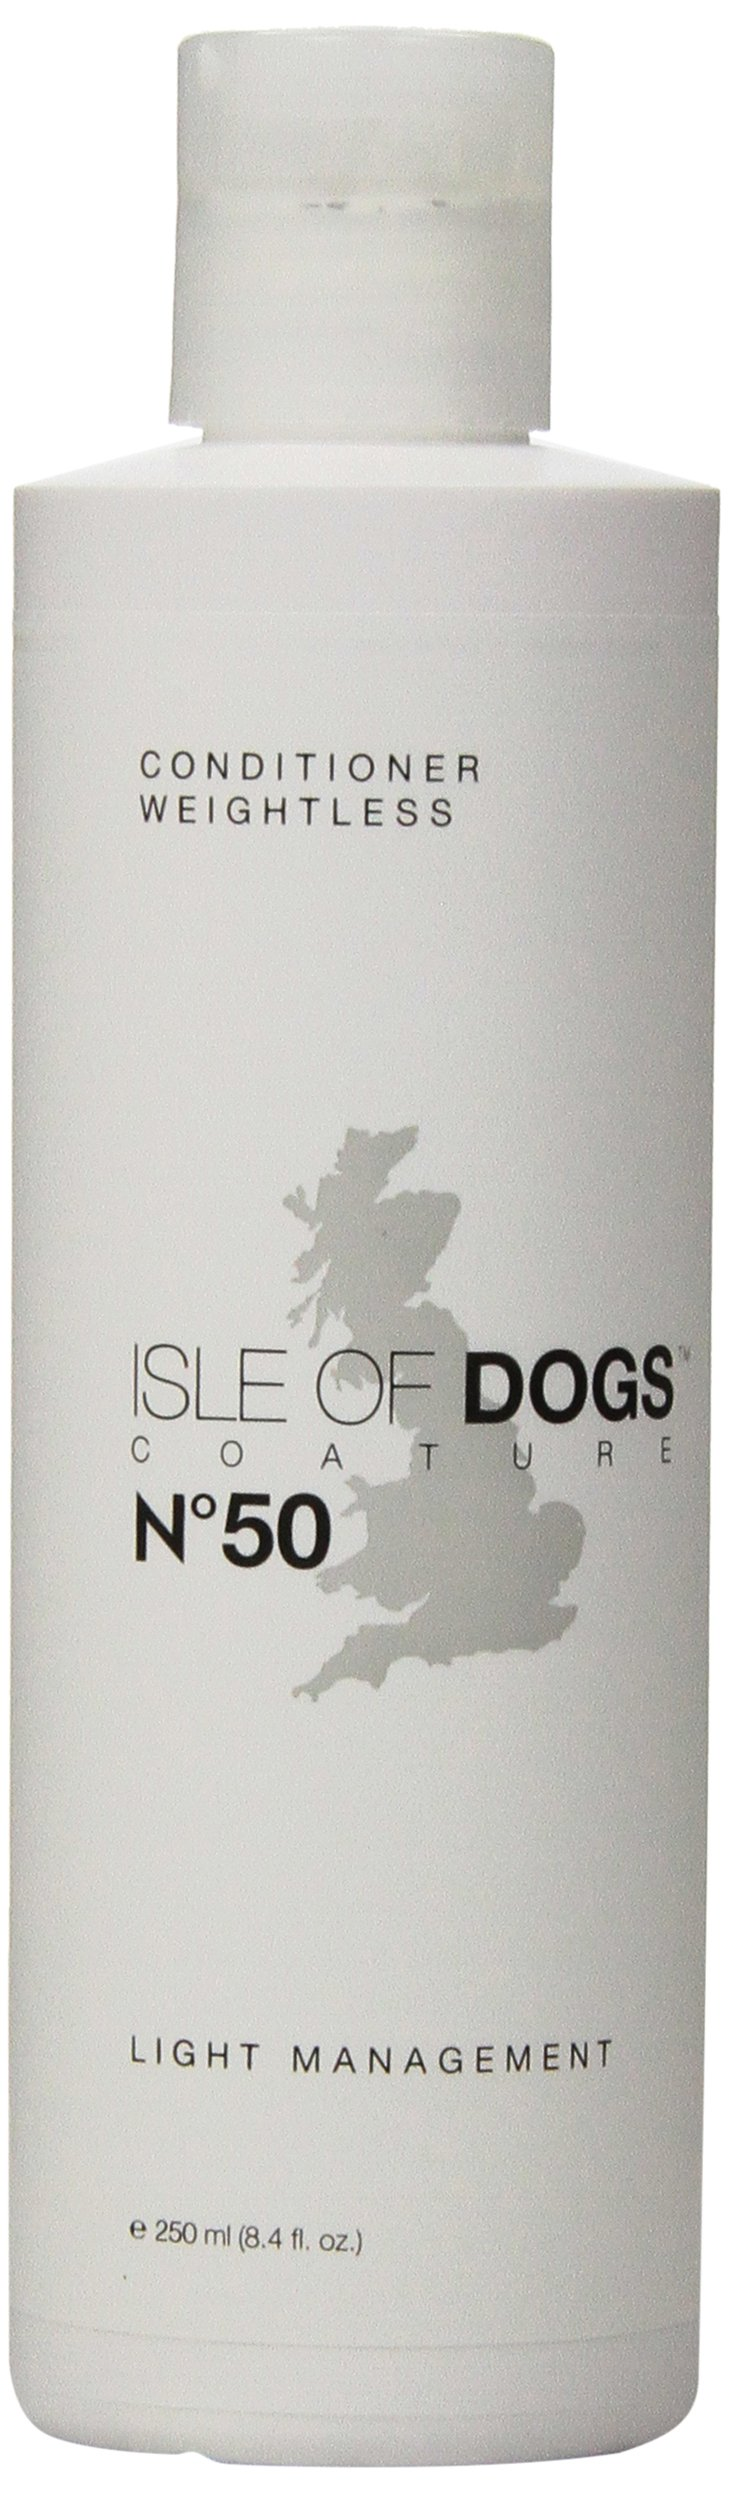 Isle of Dogs Coature No. 50 Light Management Dog Conditioner for Dry Hair, 8.4 oz.